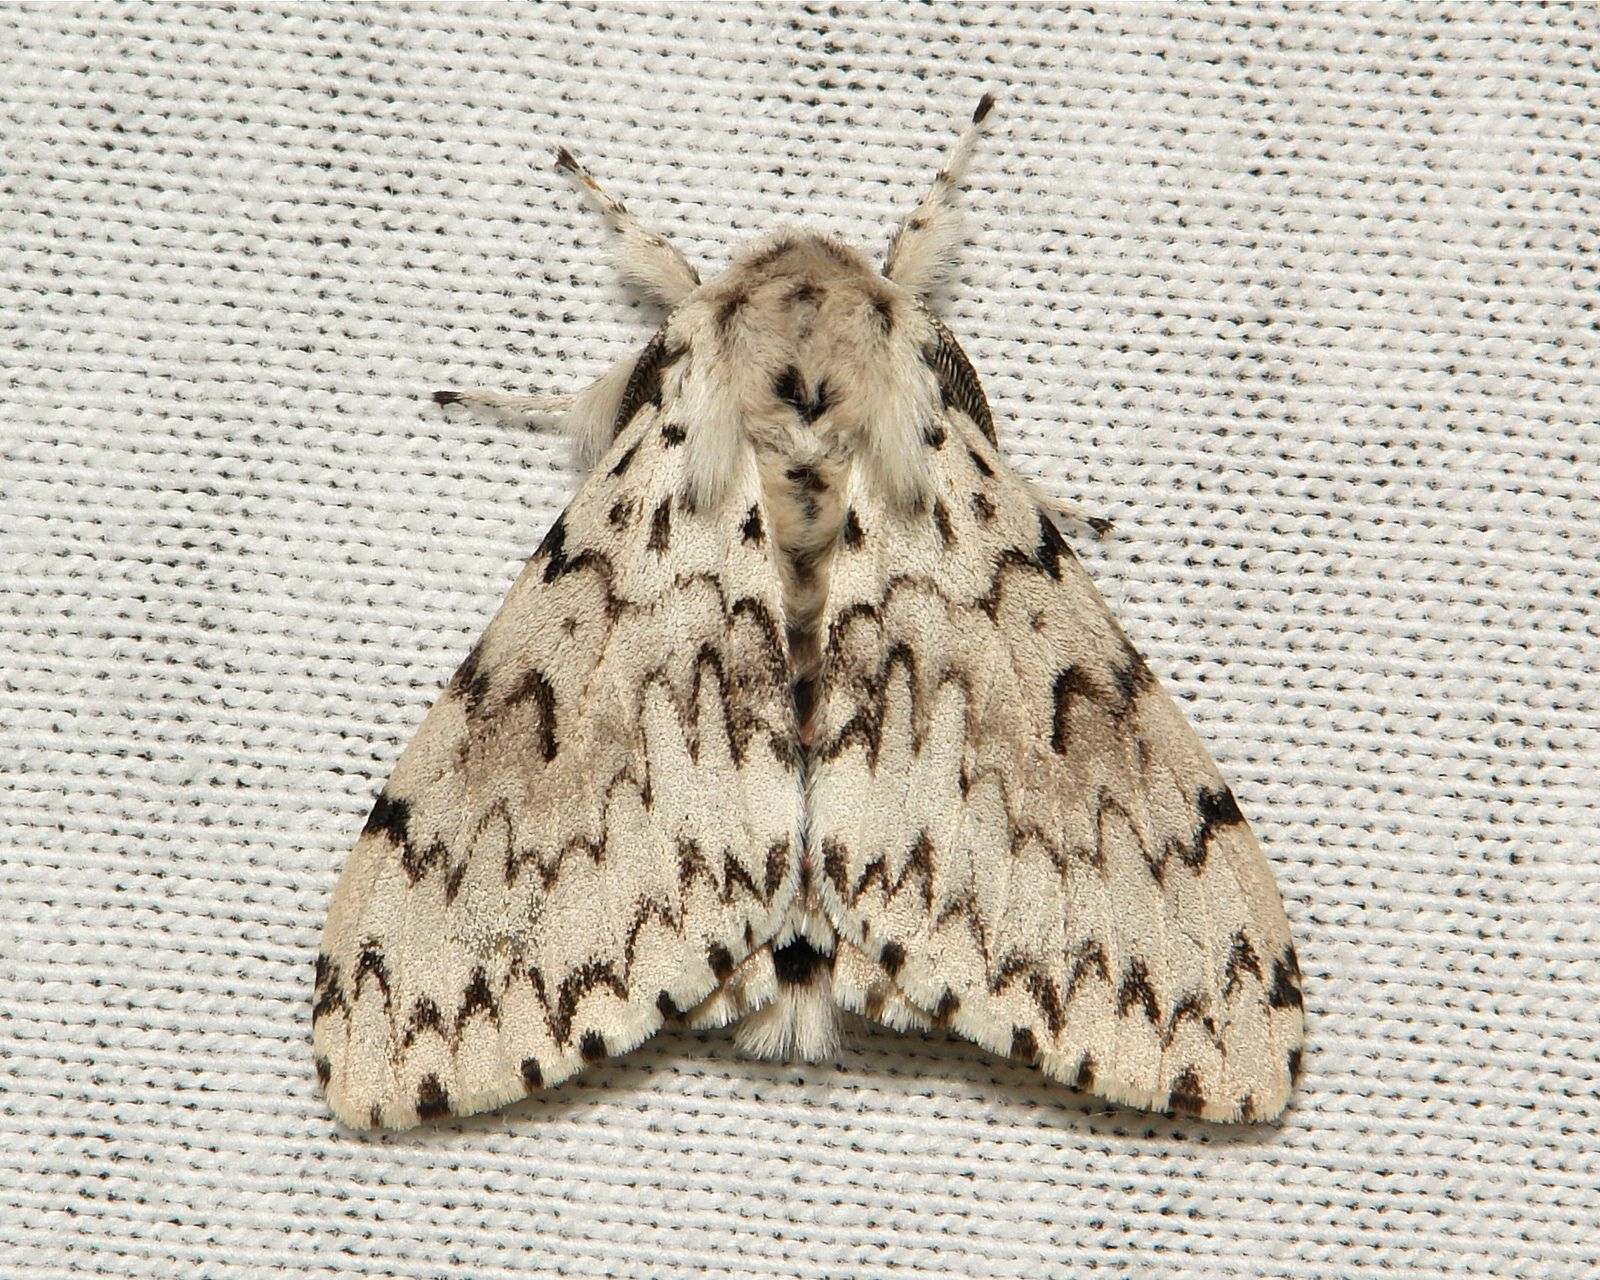 https://flic.kr/p/m5GVqZ | Tussock Moth (Lymantria sp., Lymantriinae, Erebidae) | Pu'er, Yunnan, China                                 see comments for additional image…..